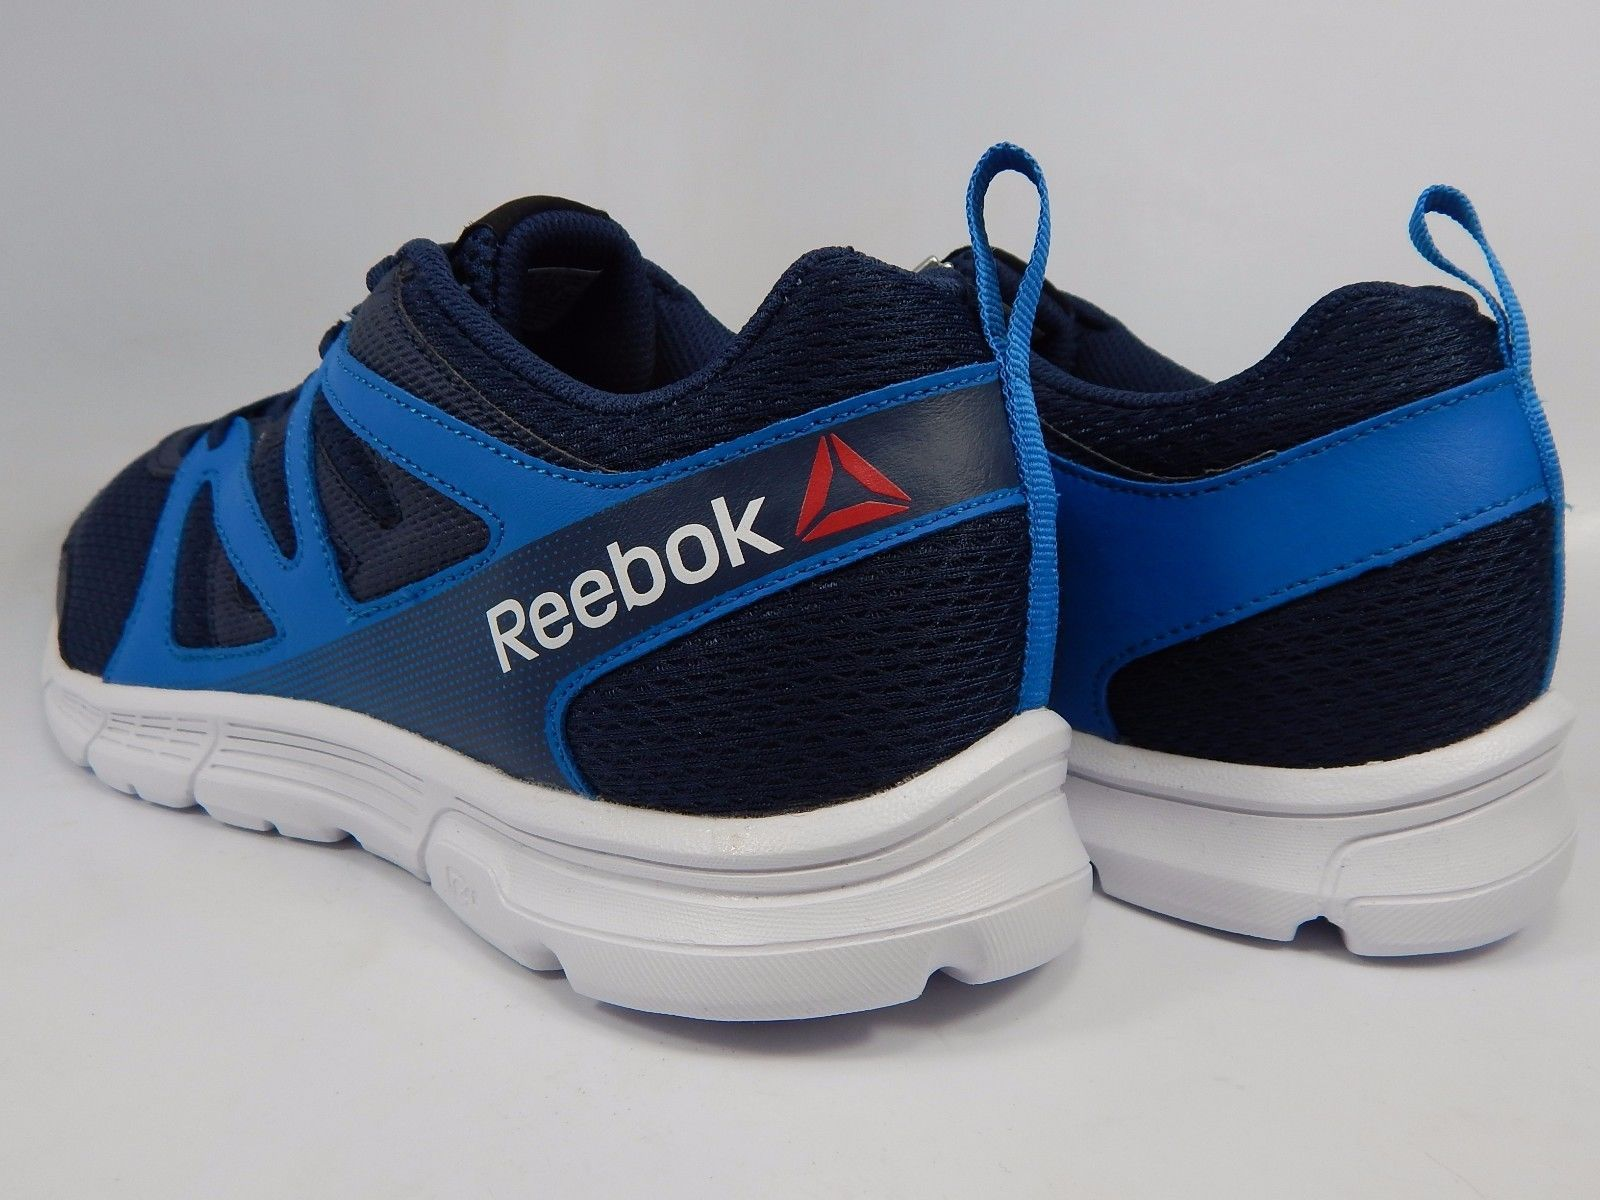 Reebok Run Supreme 2.0 MT Men's Running Shoes Size US 9 M (D) EU 42 Blue AR3002